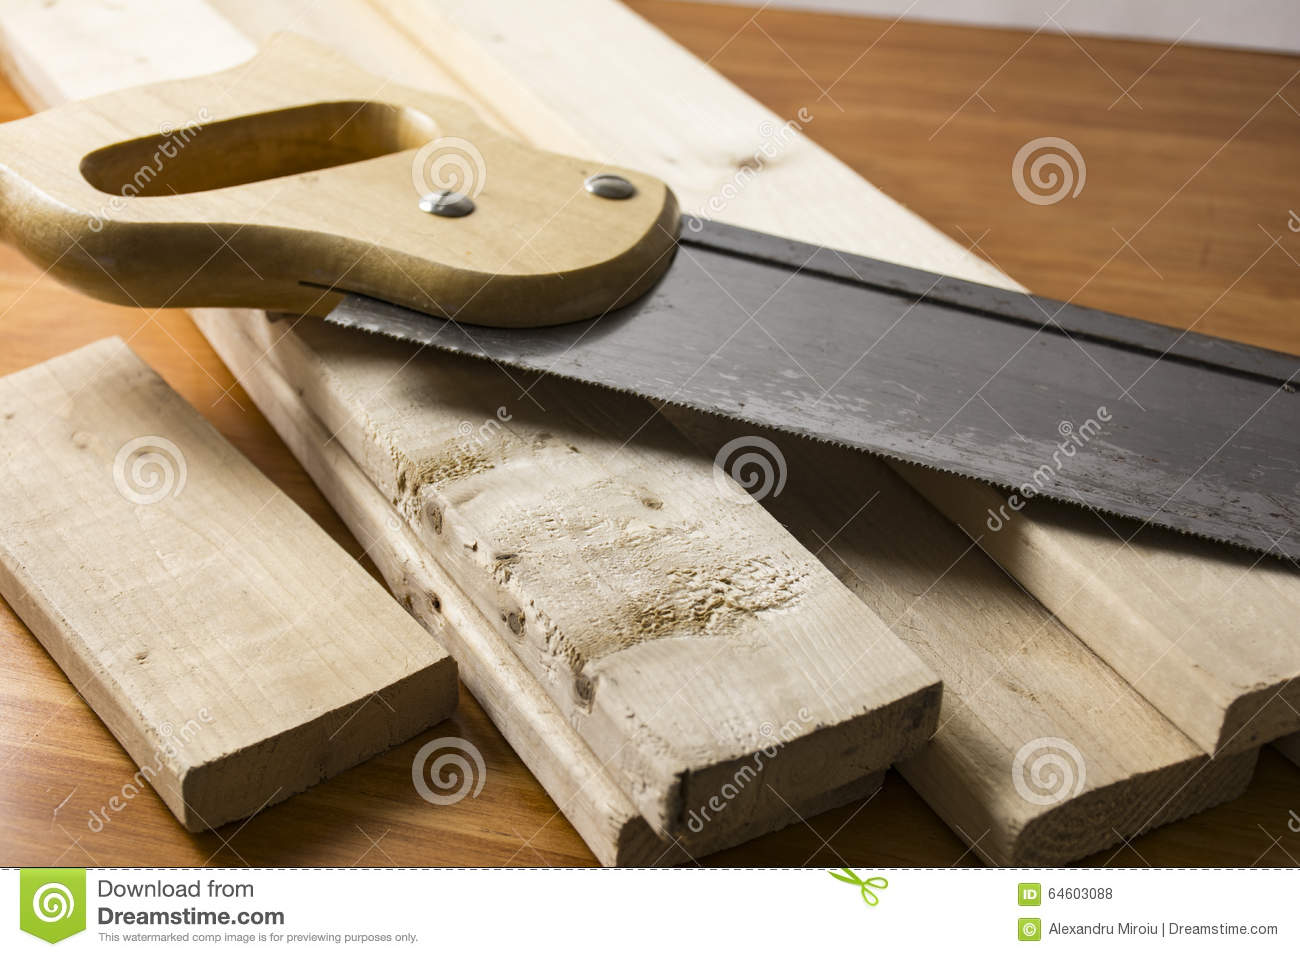 Do It Yourself Home Design: Do It Yourself Woodworking Project Stock Photo